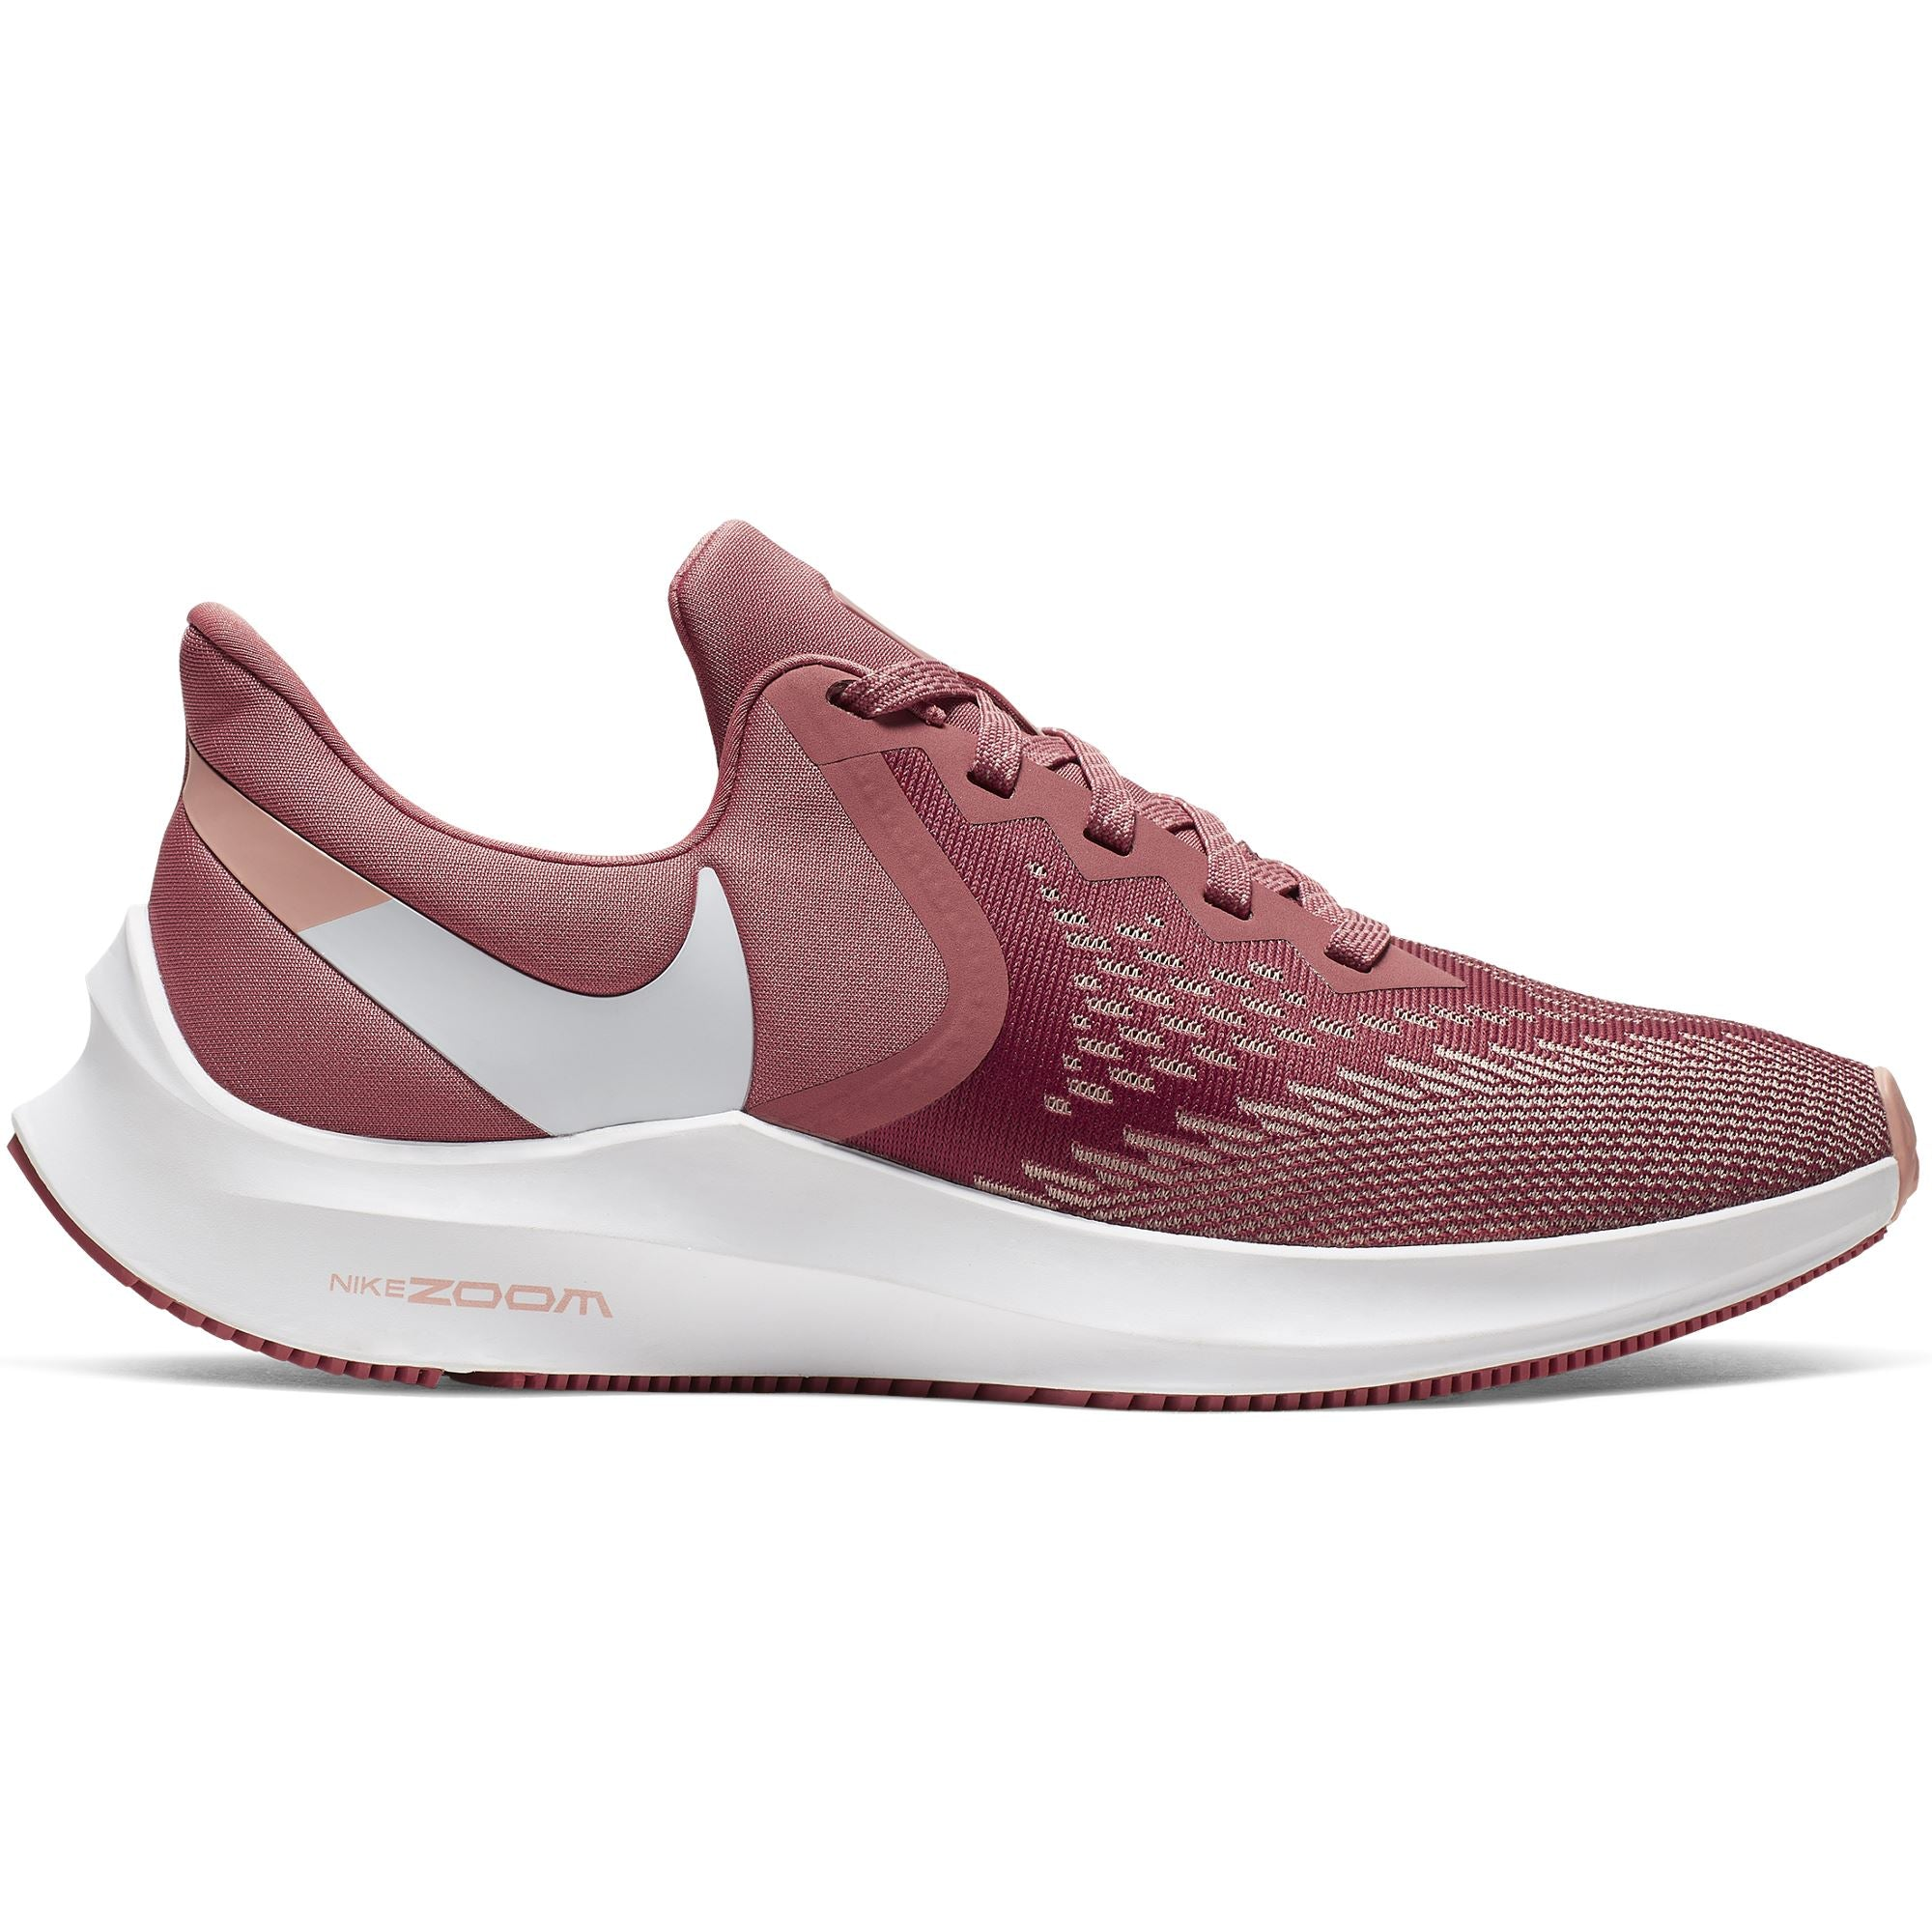 Nike Womens Air Zoom Winflo 6 - Light Redwood/White-Pink Quartz SP-Footwear-Womens Nike